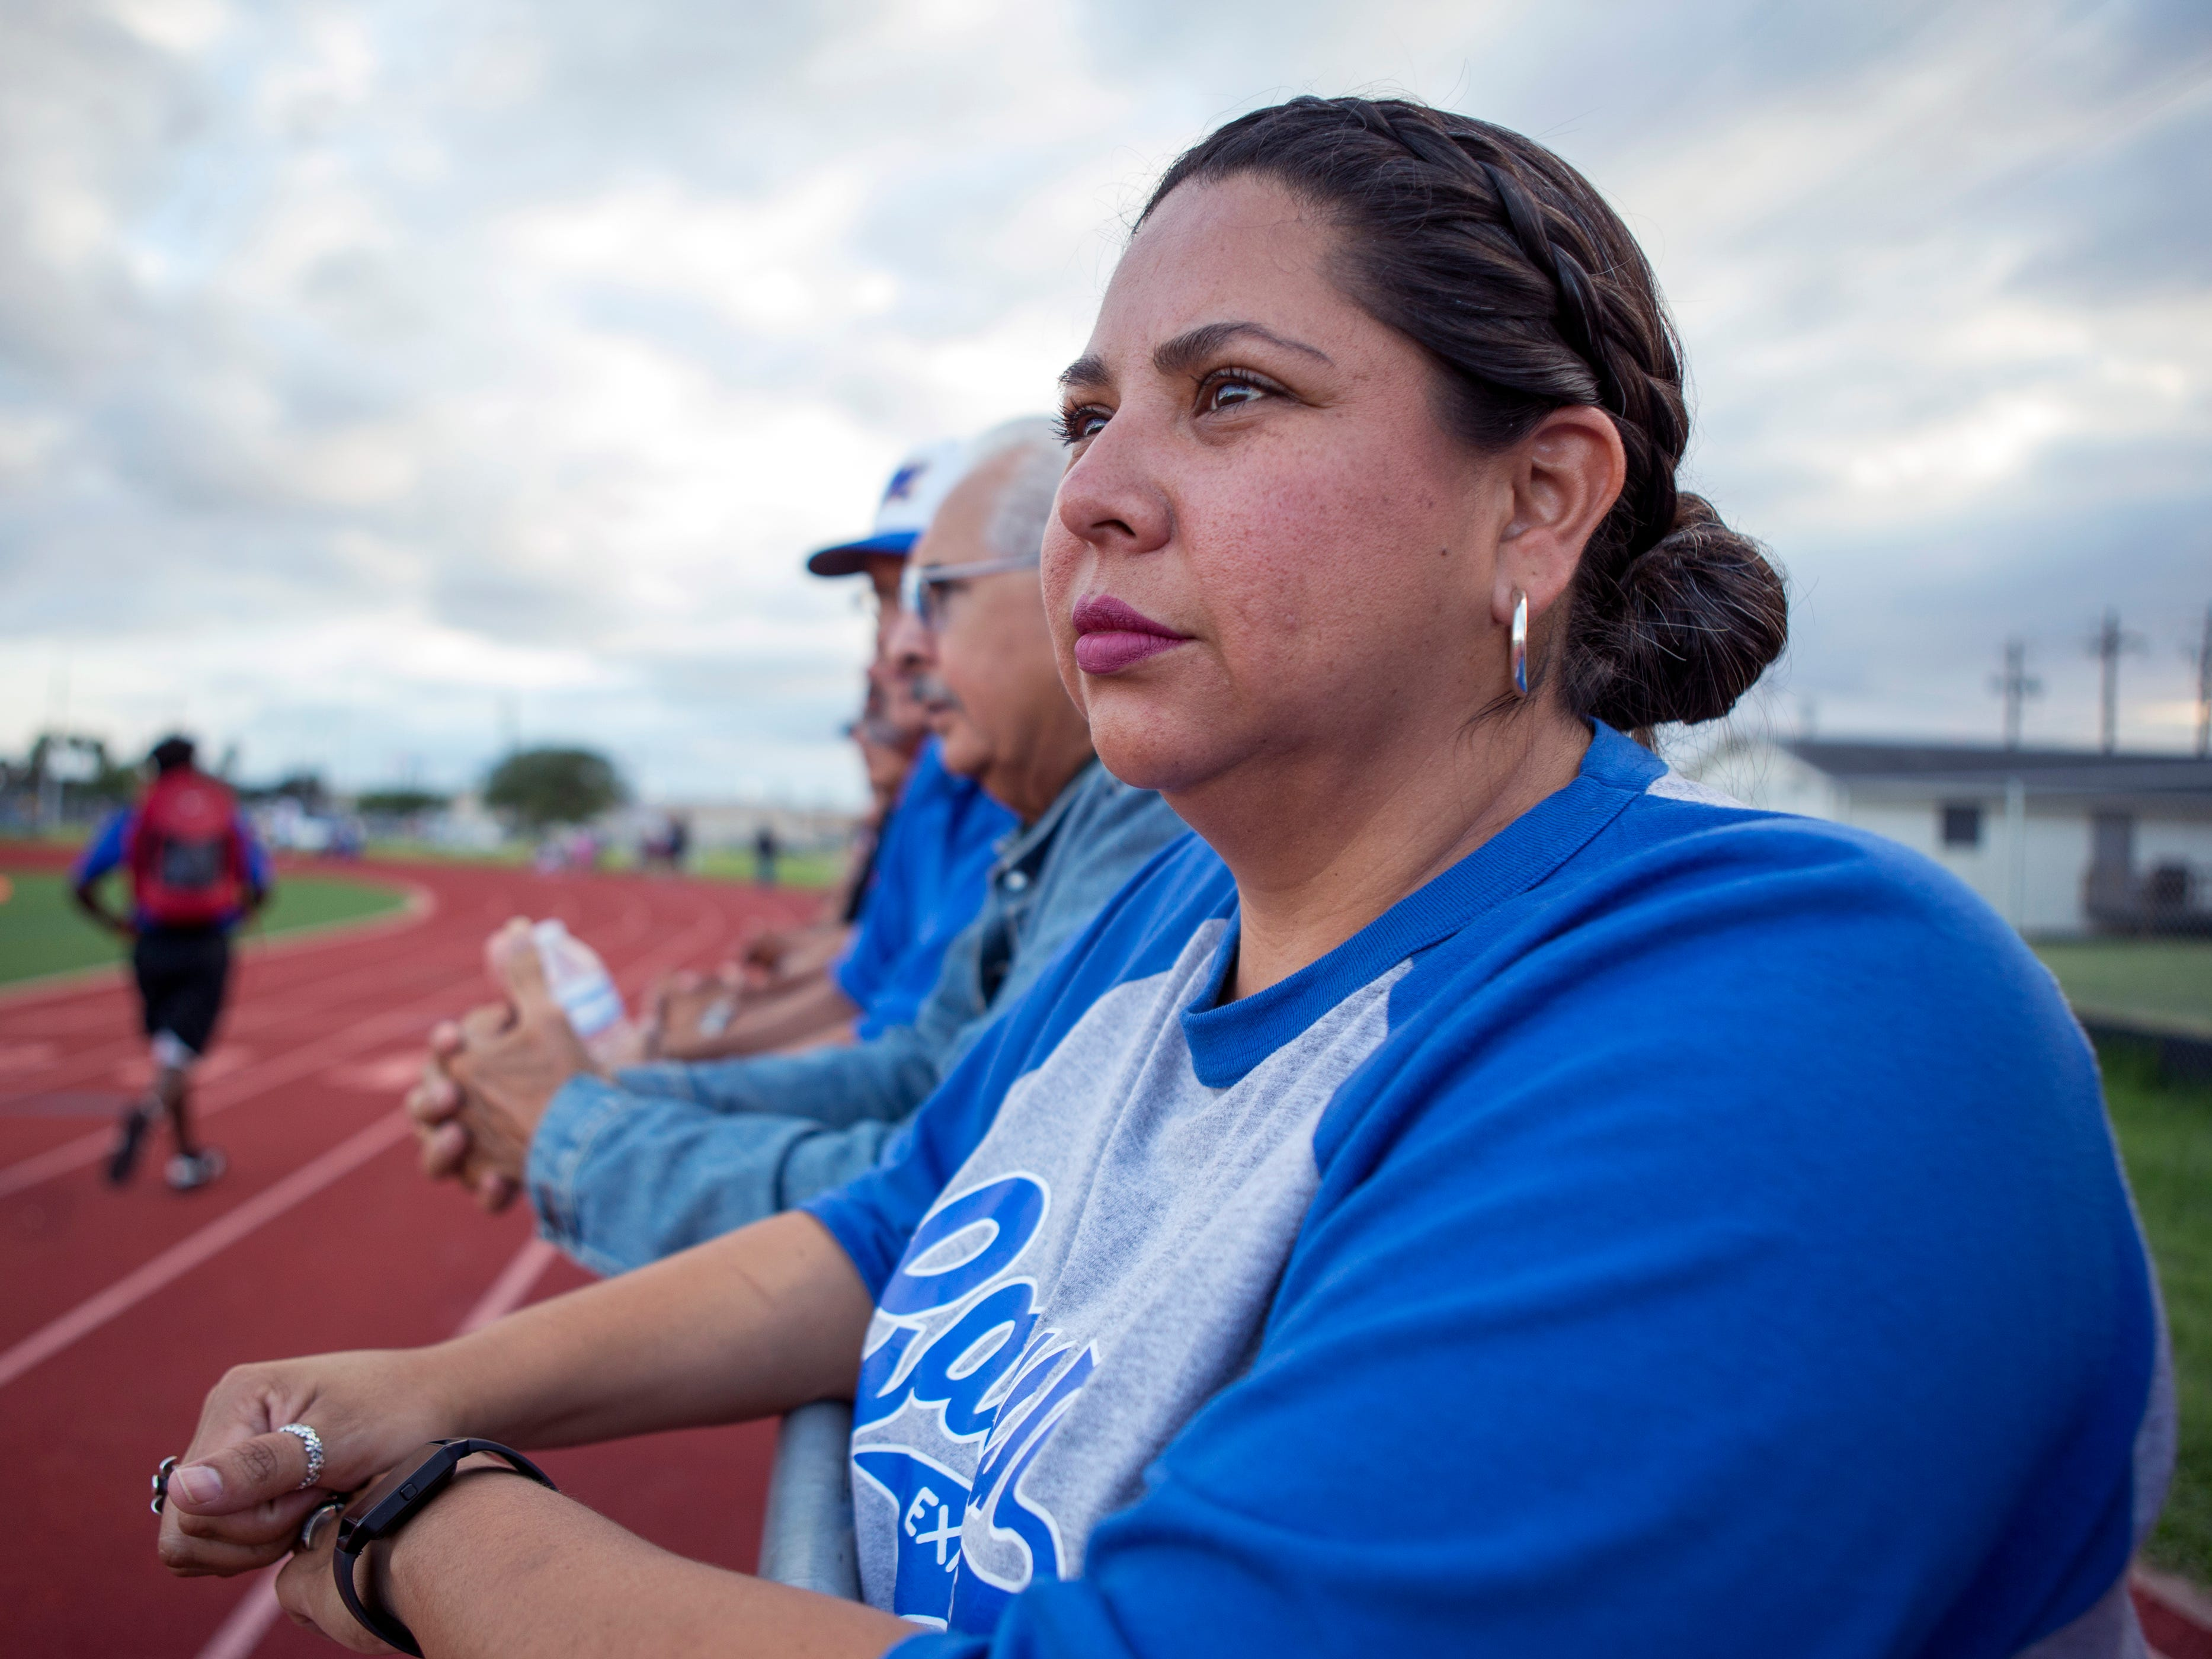 Angel Flores-Cano attends a King High School junior varsity football game at Moody High School on September 27, 2018. A kindergarten teacher at Galvan Elementary School in Corpus Christi, TX, Flores-Cano delivers groceries with Shipt in order to help make ends meet. She averages 12 to 15 hours per week delivering groceries. Texas ranked 28th in the nation for teacher pay for the 2016-17 school year.